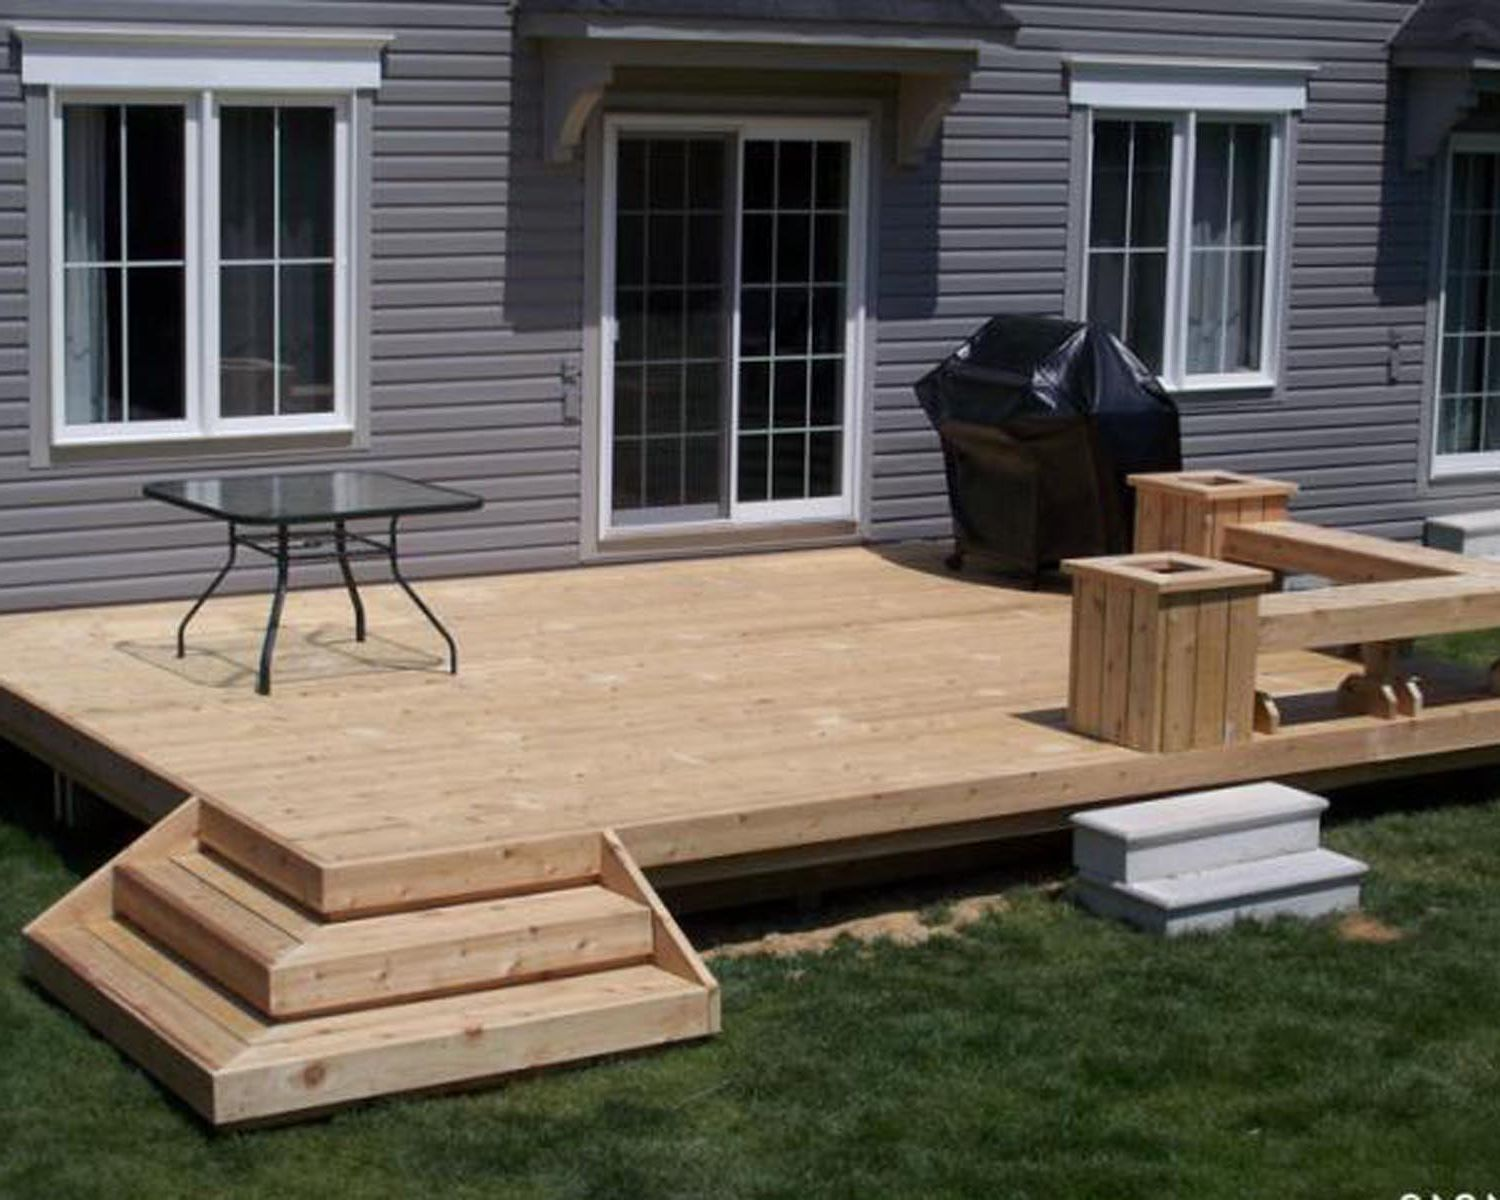 Deck Design Ideas backyard deck designs patio amazing deck design ideas composite deck design ideas remodelling Outdoor Grabbing Exterior Beauty With Small Backyard Deck Ideas Simple Decoration For Small Backyard